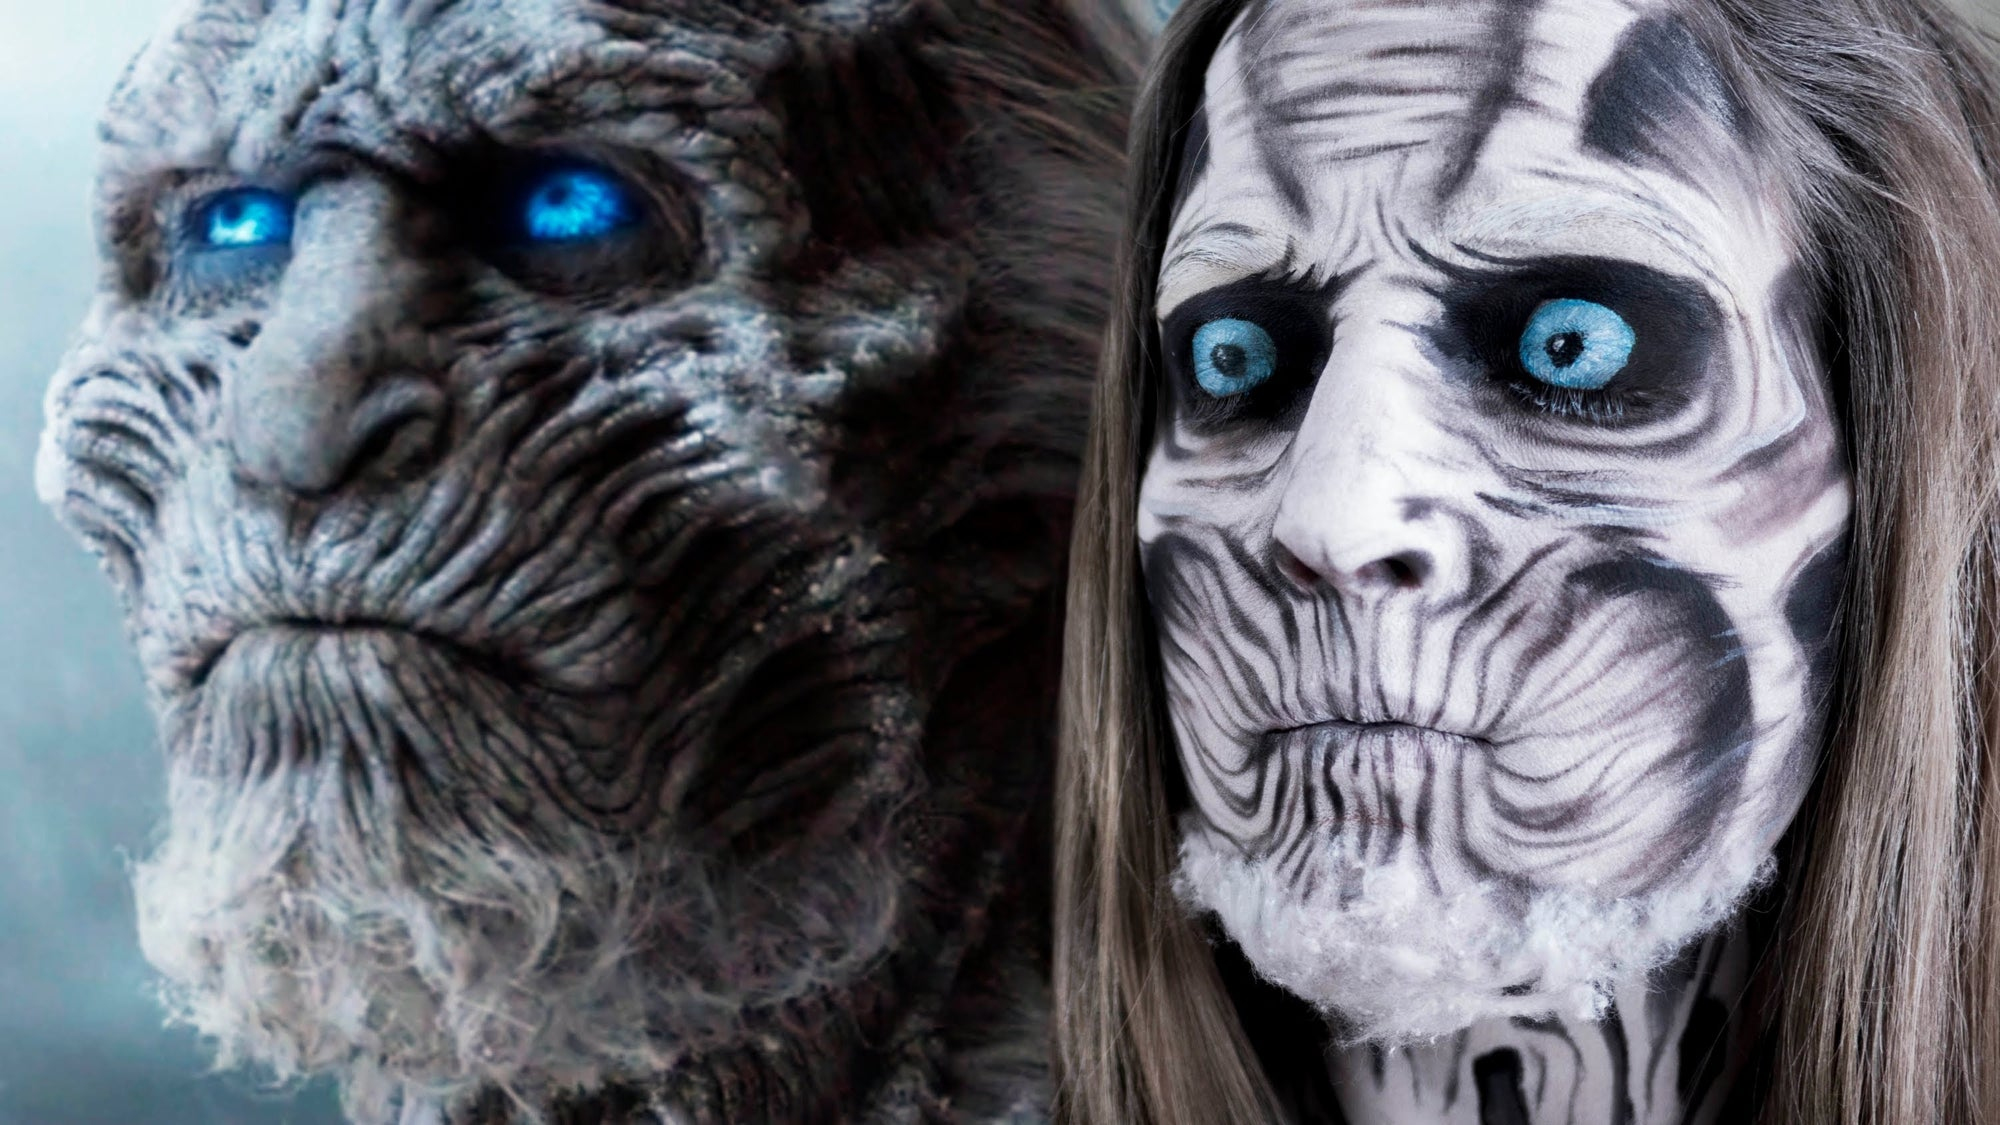 8 Game of Thrones Make-Up Inspiration Tutorials